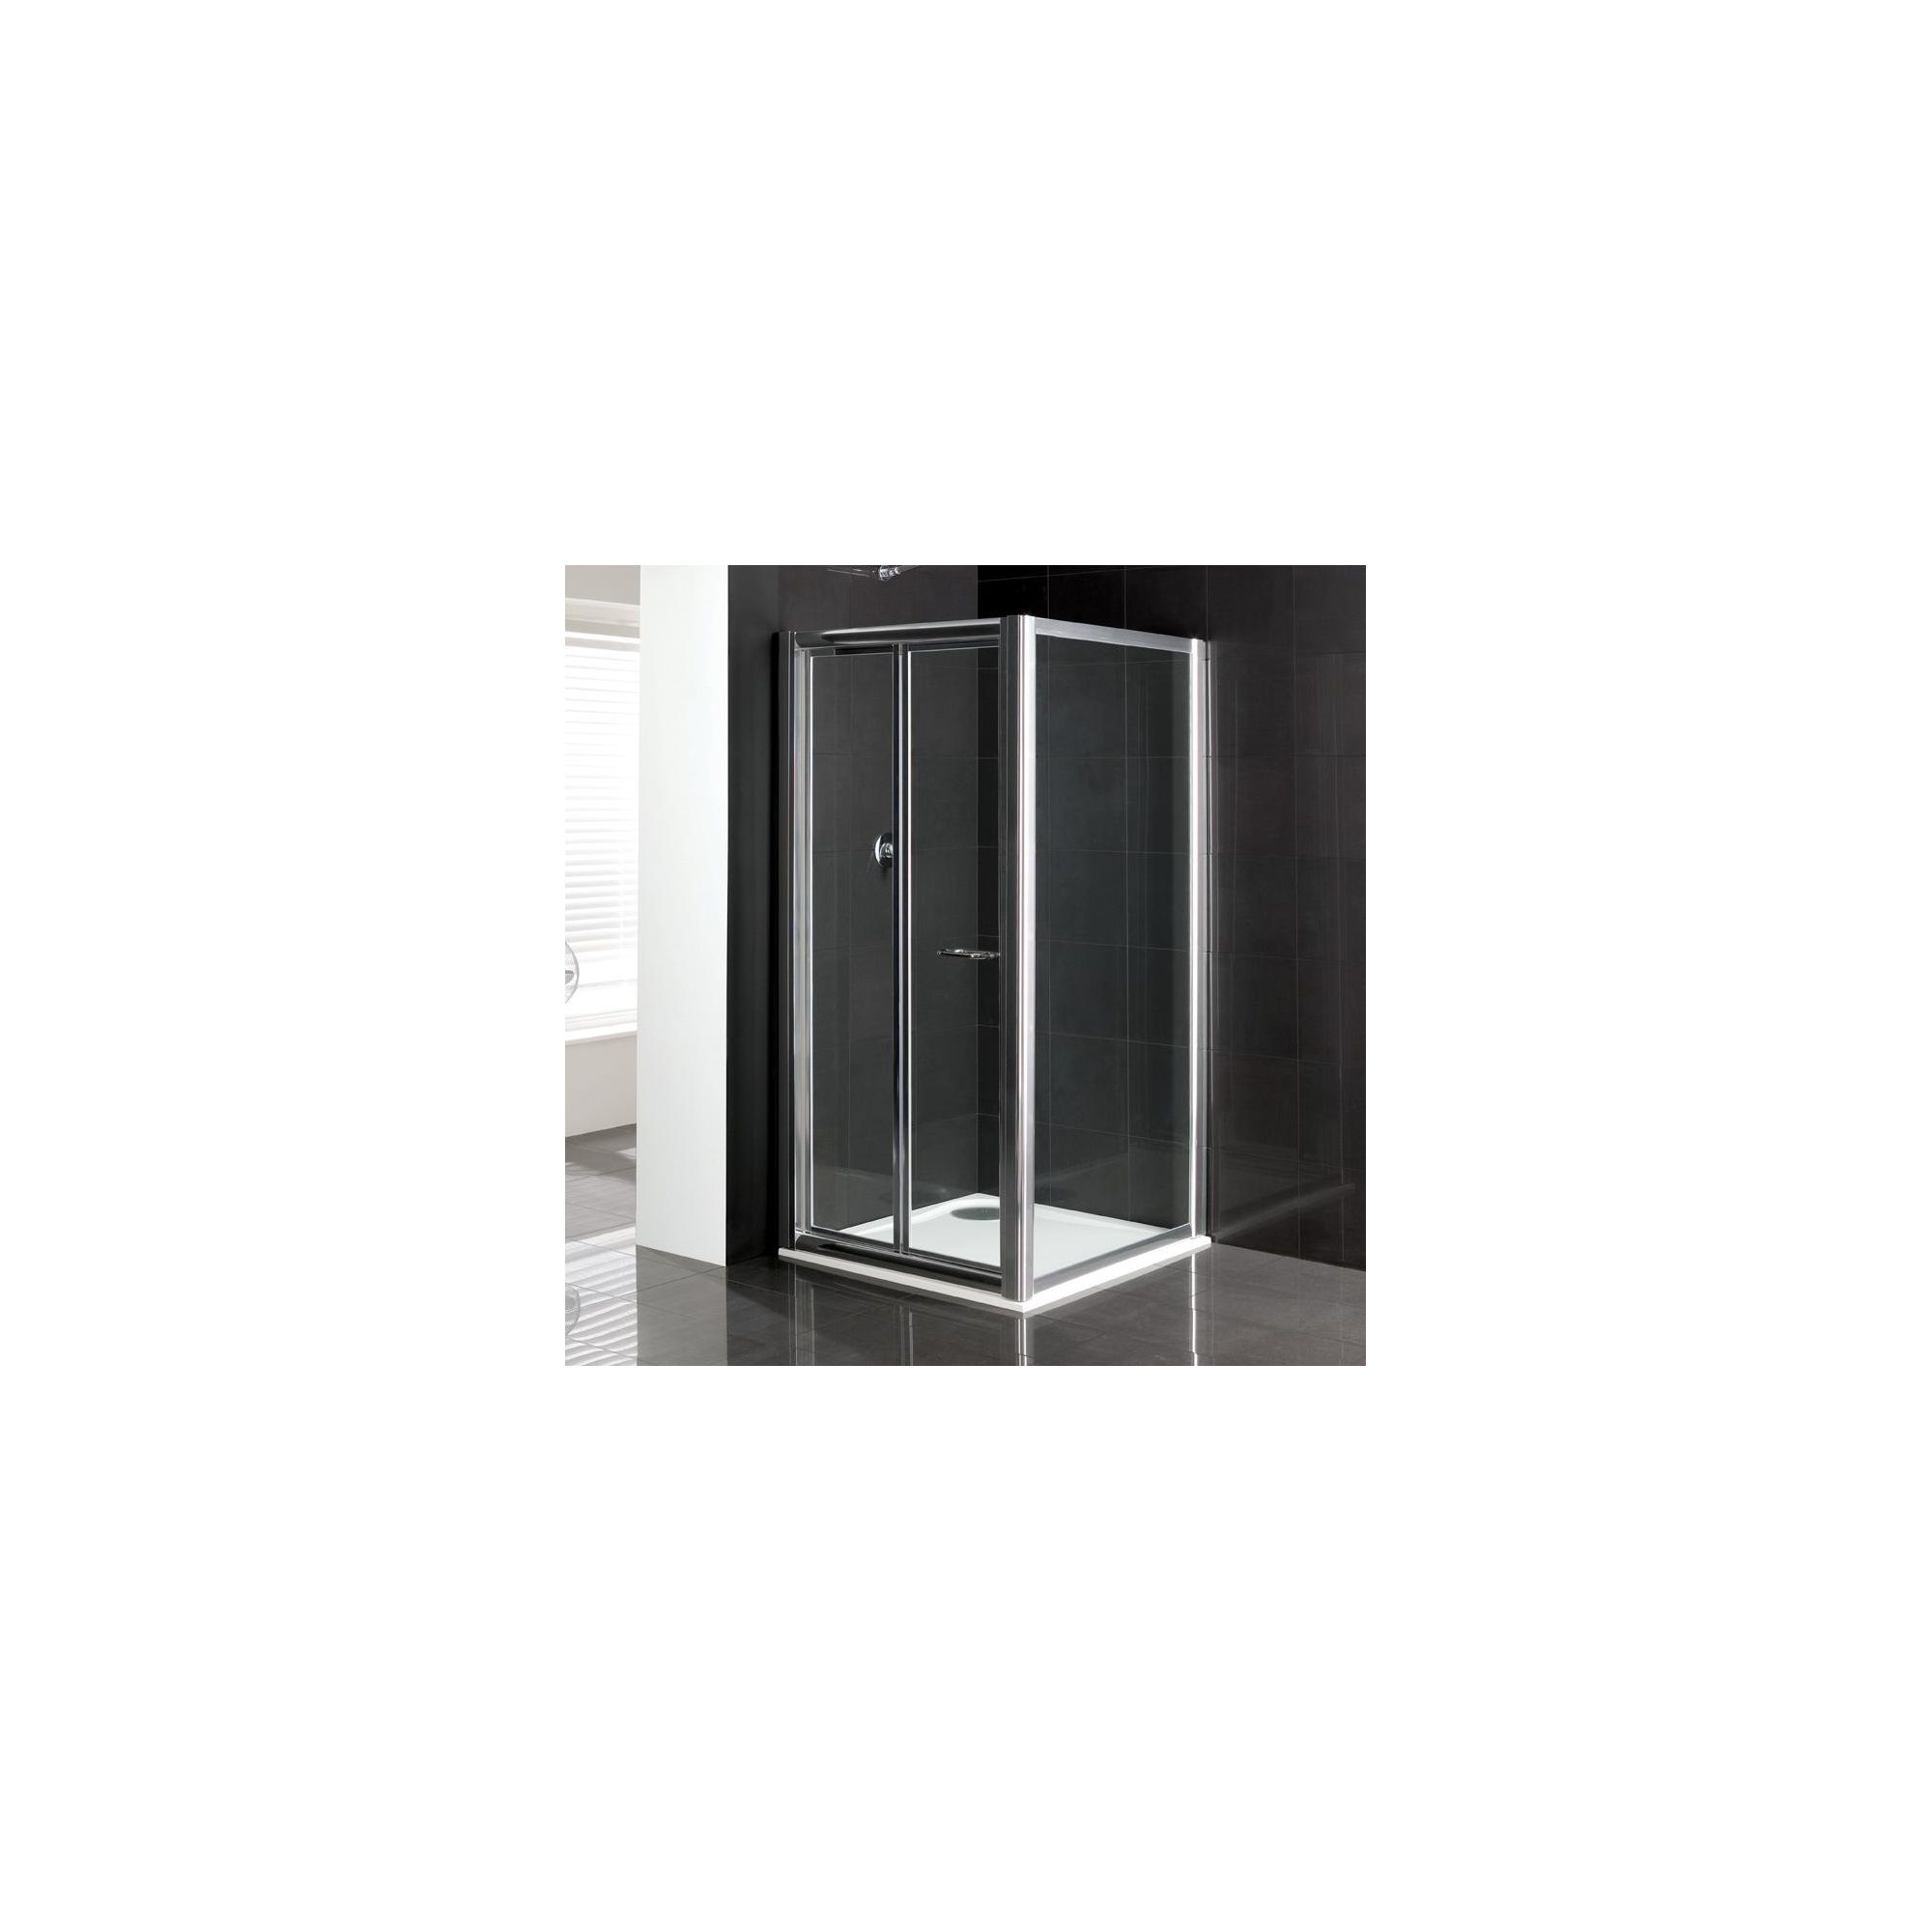 Duchy Elite Silver Bi-Fold Door Shower Enclosure with Towel Rail, 1000mm x 900mm, Standard Tray, 6mm Glass at Tescos Direct